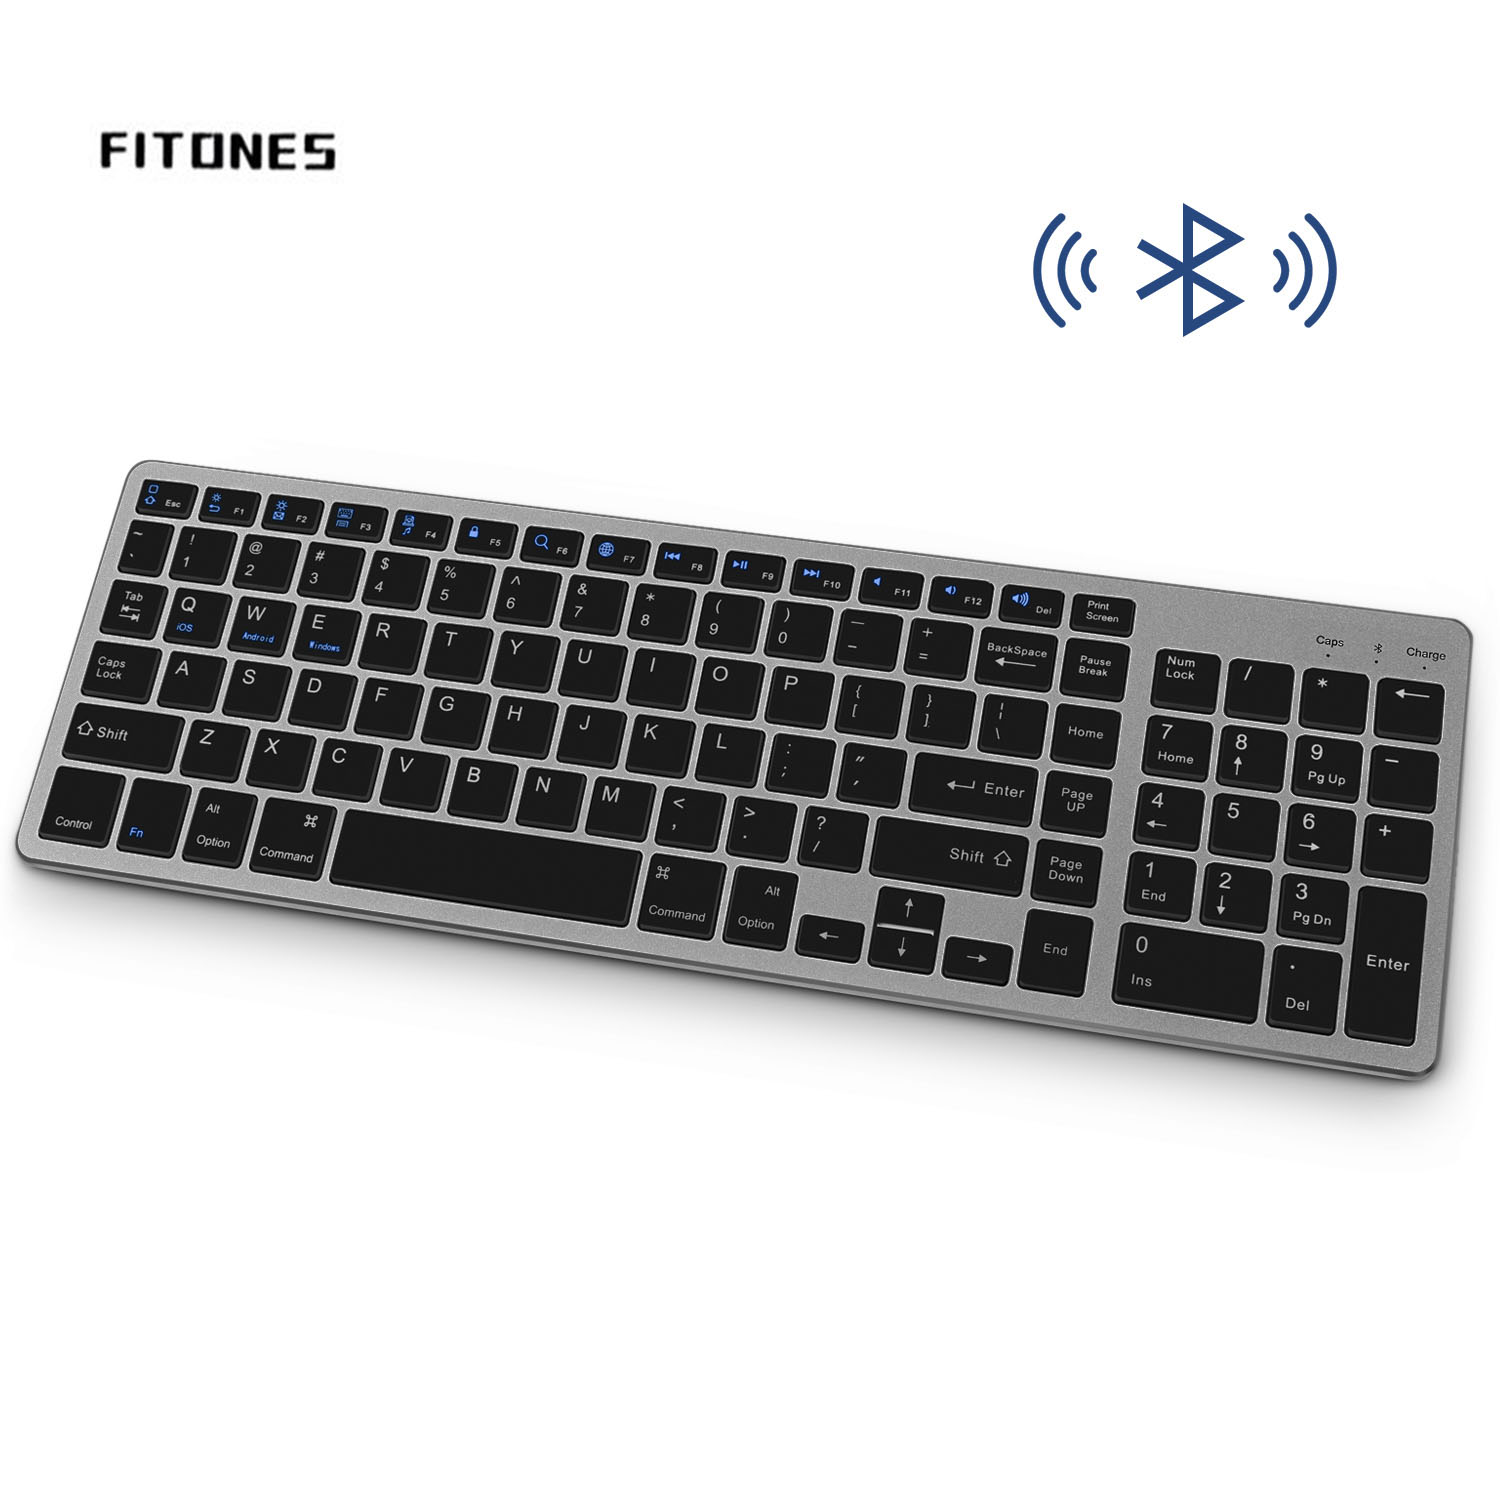 Wireless Bluetooth Keyboard, Rechargeable Ultra-Thin Design, Full-Size Keys with Numeric Keypad, for Laptop Desktop PC Tablet